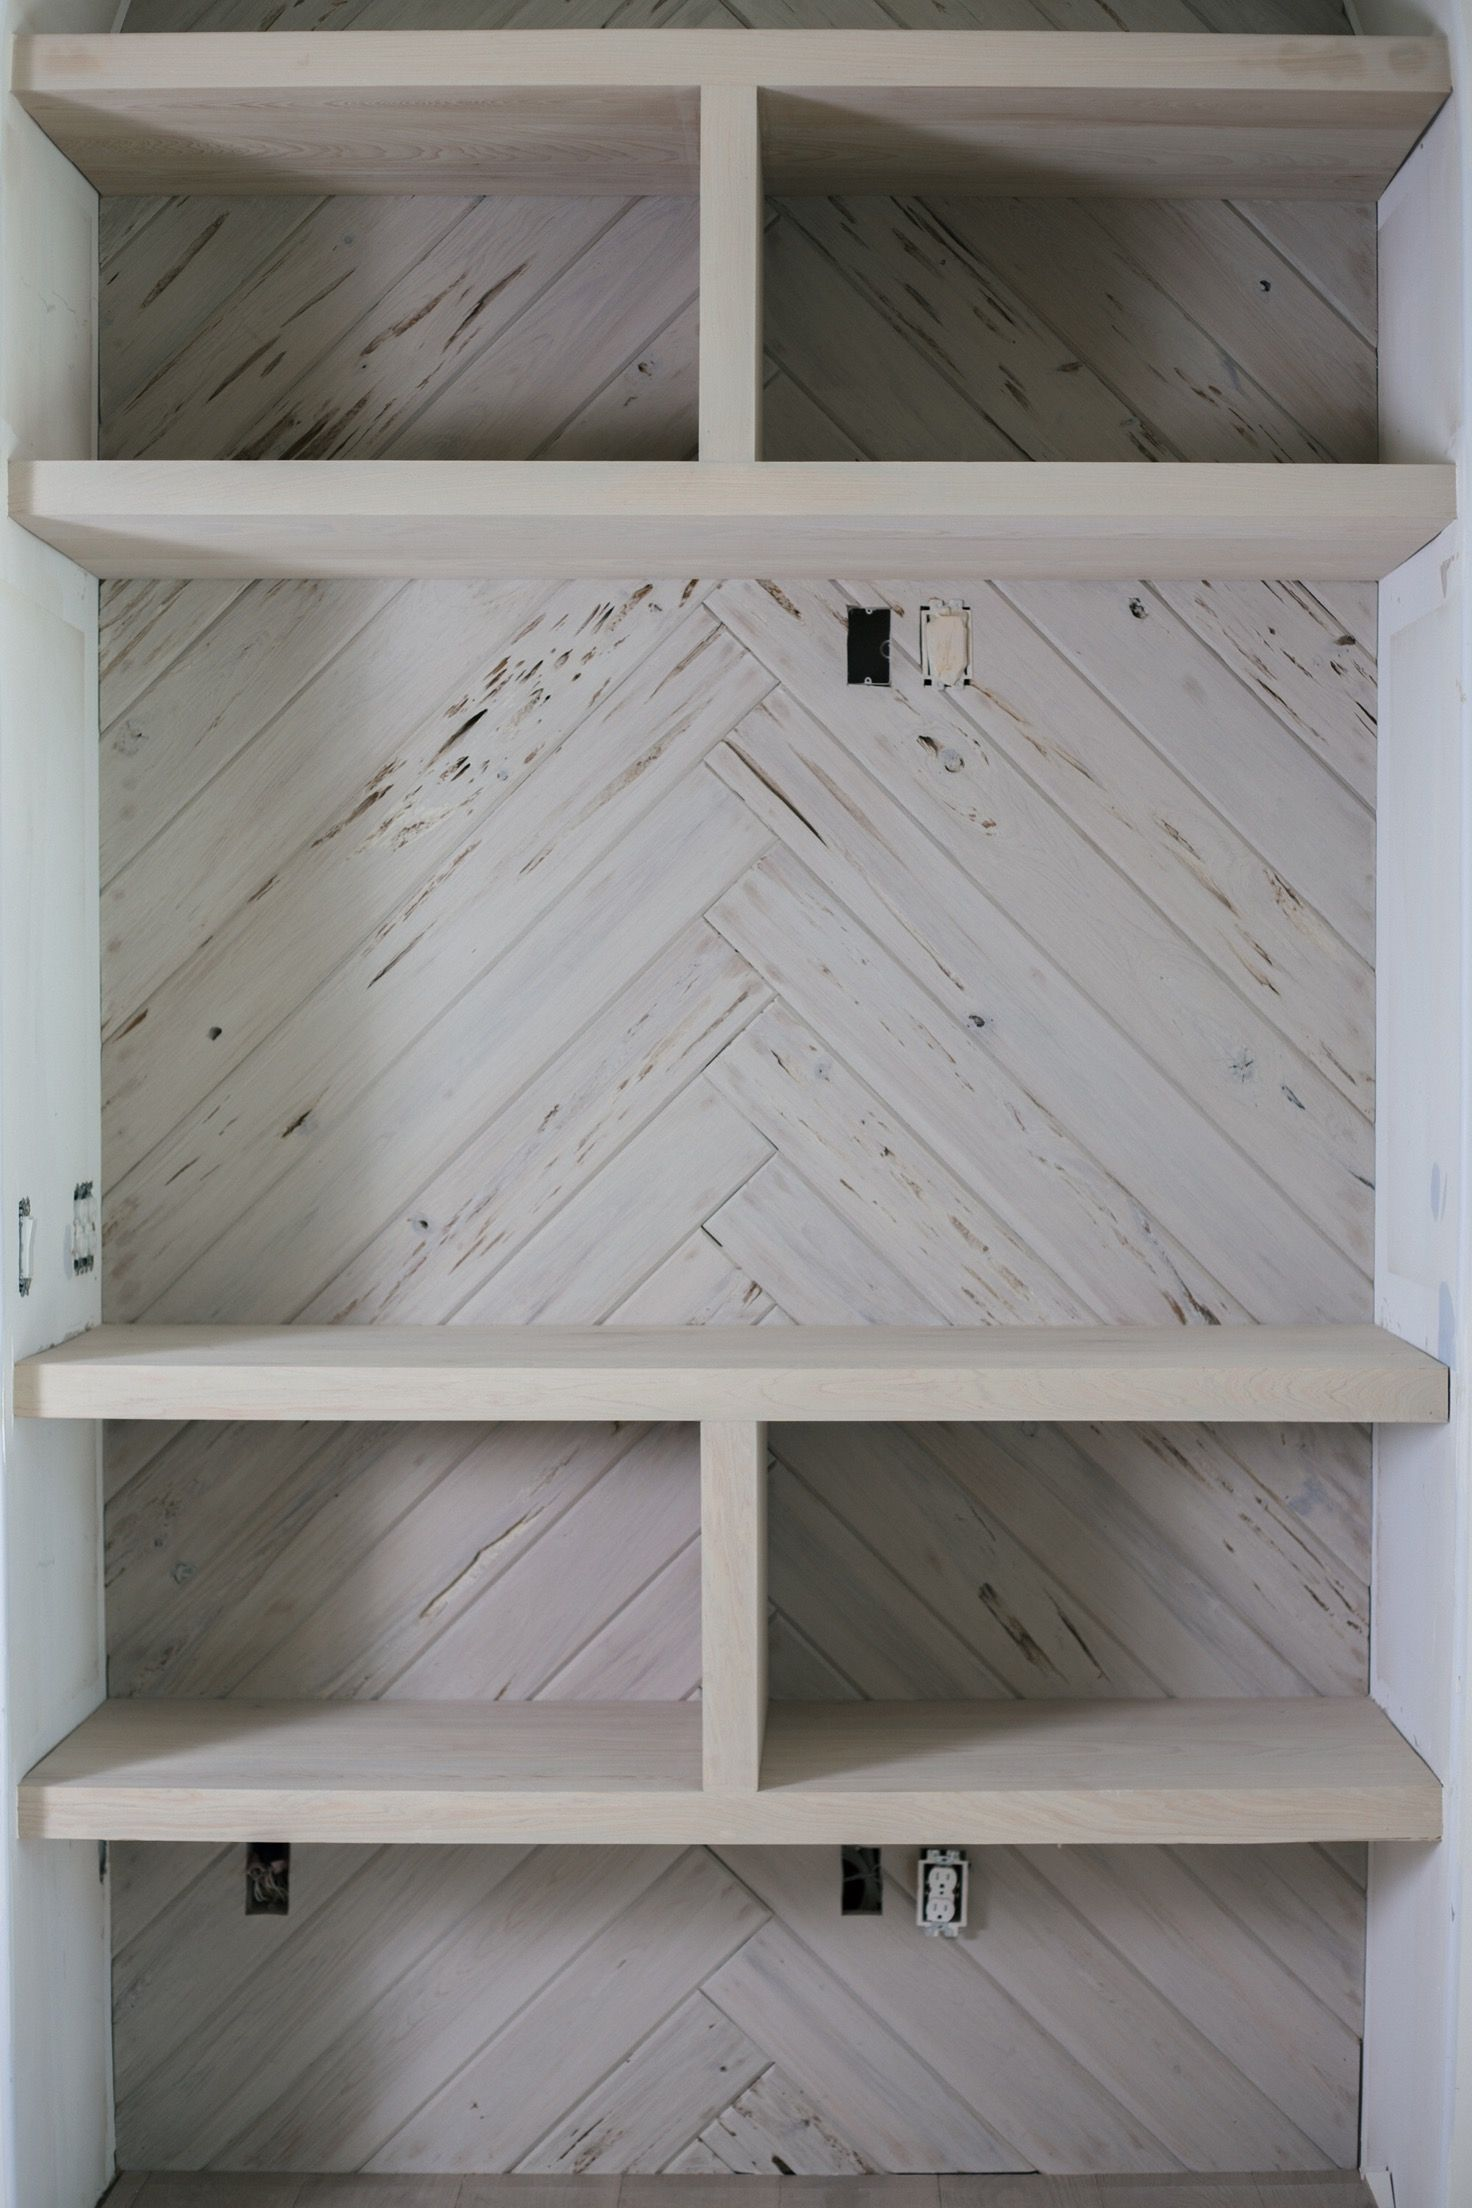 Revestimiento Techo Madera Pecky Cypress Limewash Niche And Shelving By Artistic